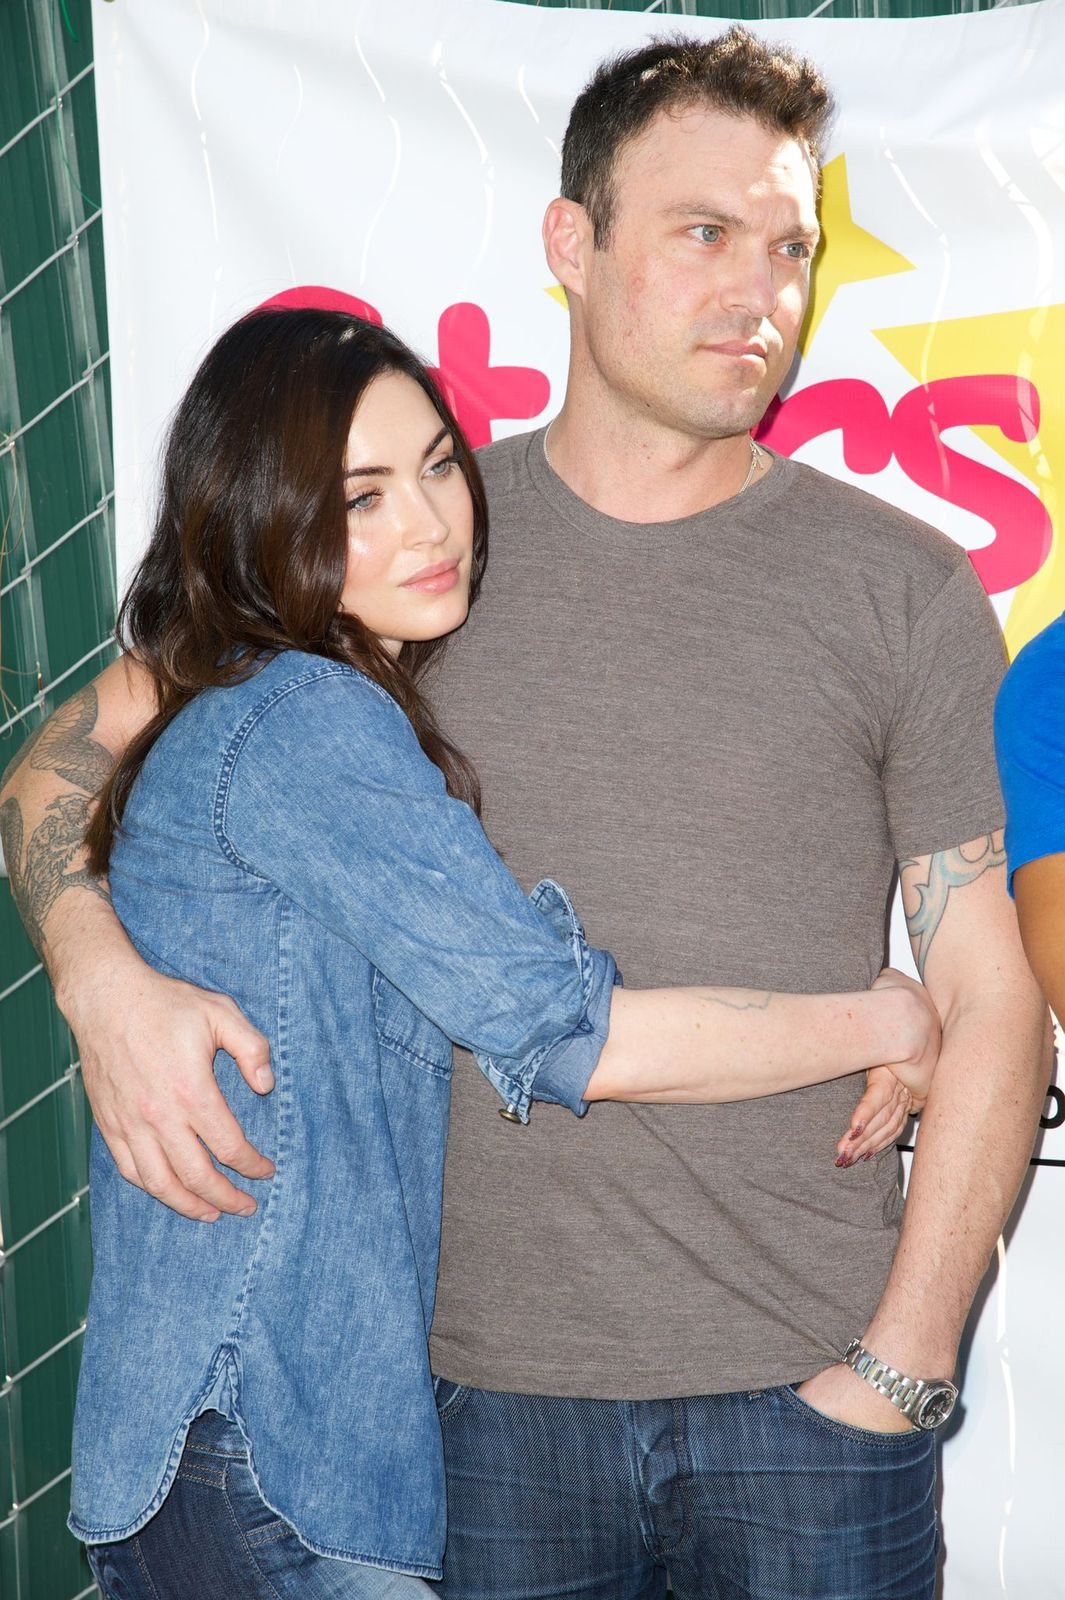 """Megan Fox and Brian Austin Green atThe Celebrity Source's Inaugural """"Stars 4 Smiles"""" event on September 16, 2014, in Torrance, California   Photo:Earl Gibson III/Getty Images"""